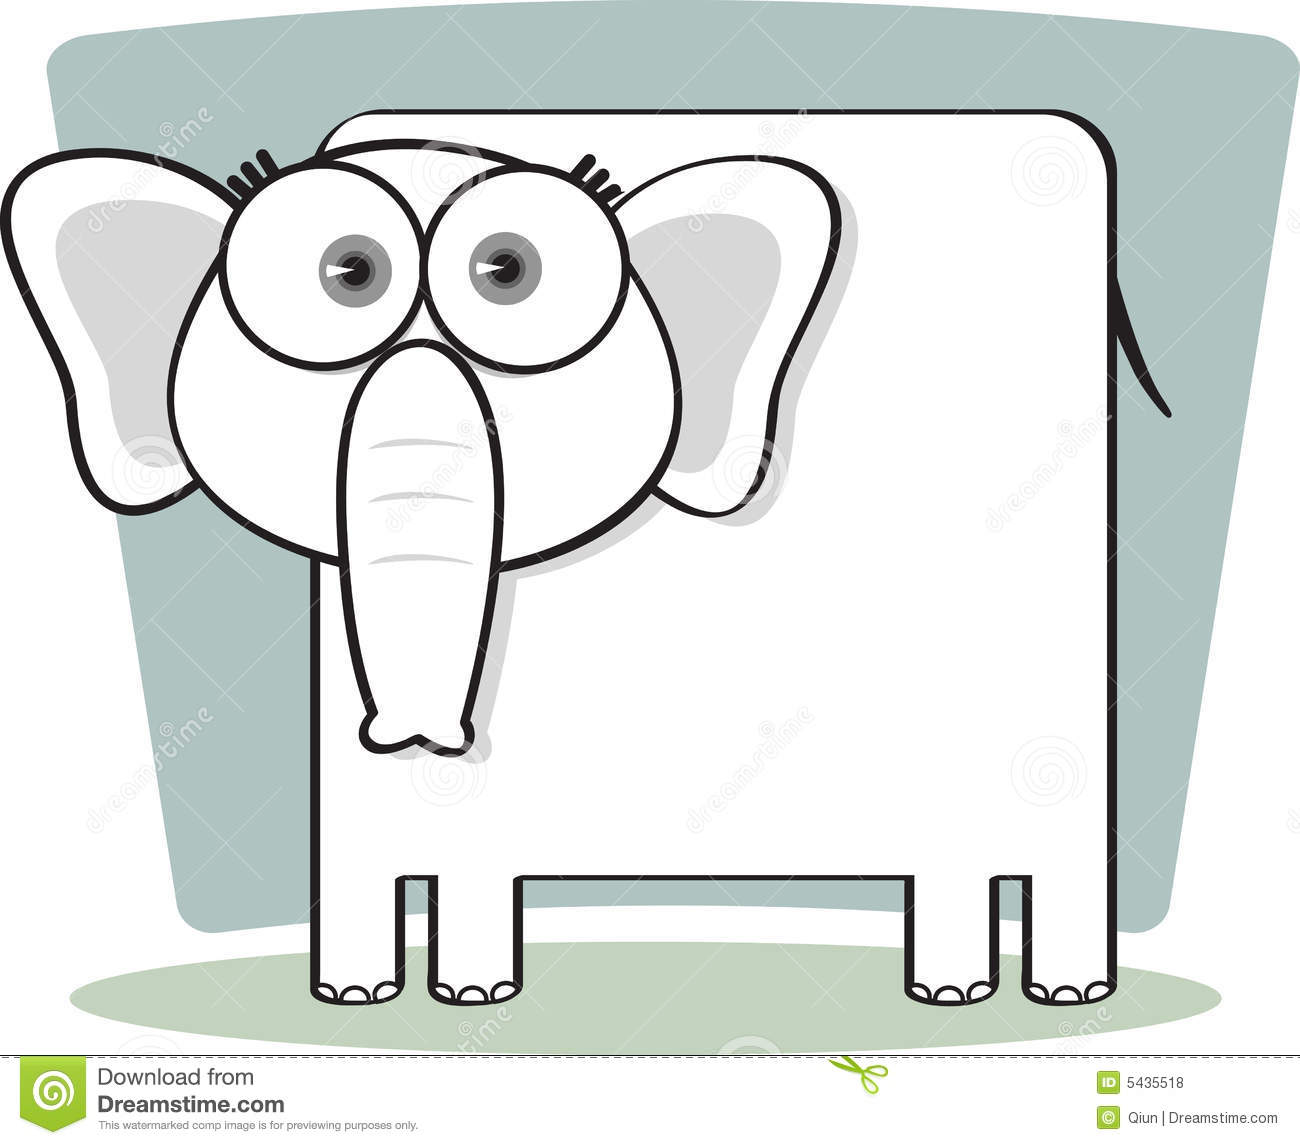 Royalty Free Stock Photos  Cartoon Elephant in Black and WhiteCartoon Elephant Black And White